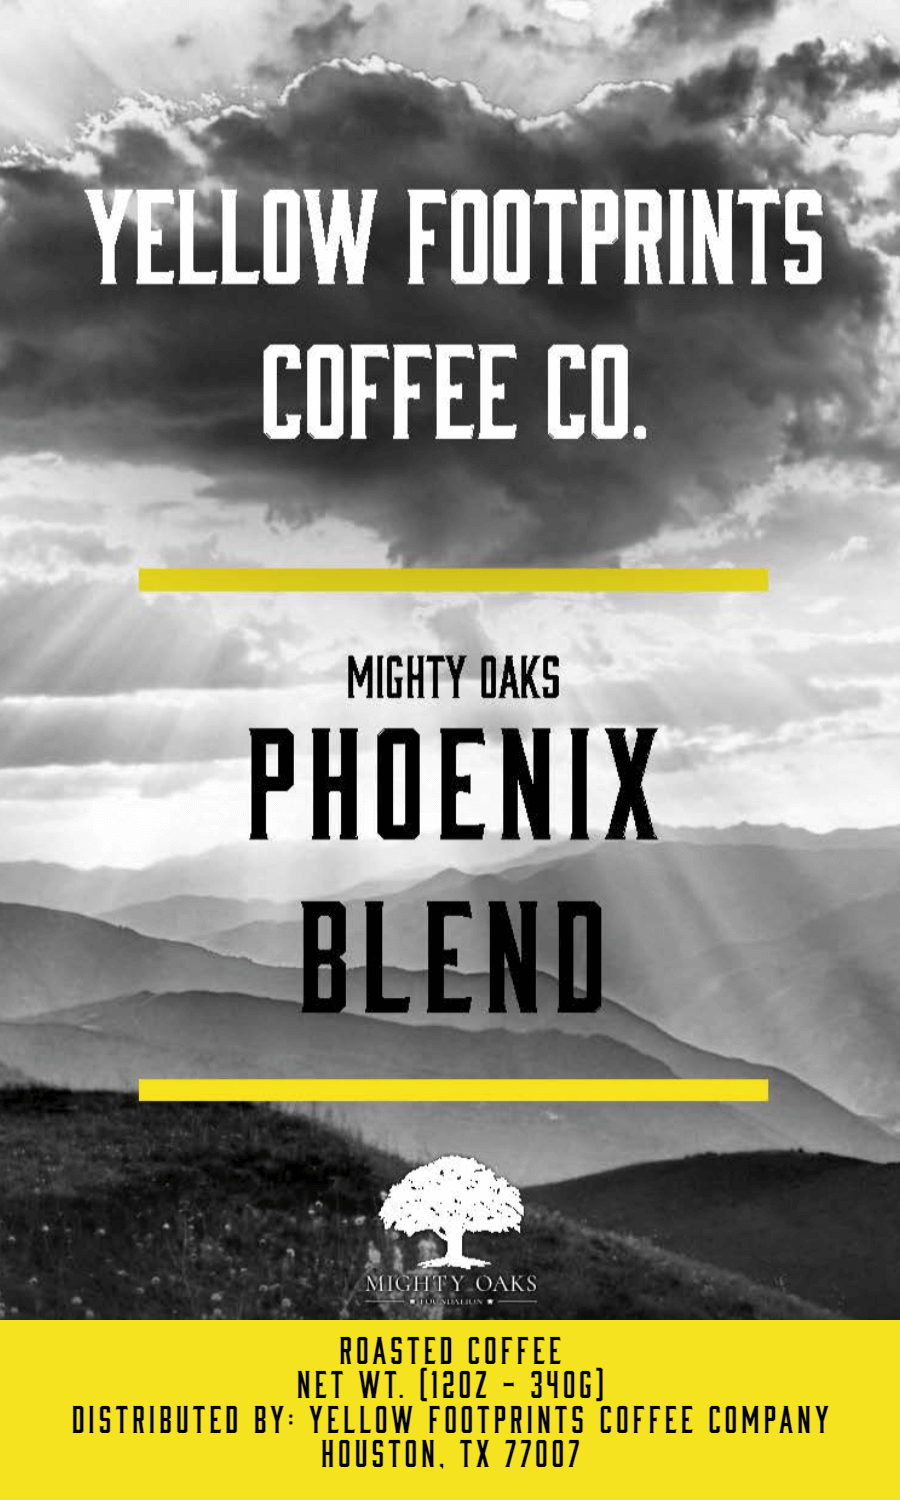 Mighty Oaks - Phoenix blend from Yellow Footprints Coffee Company